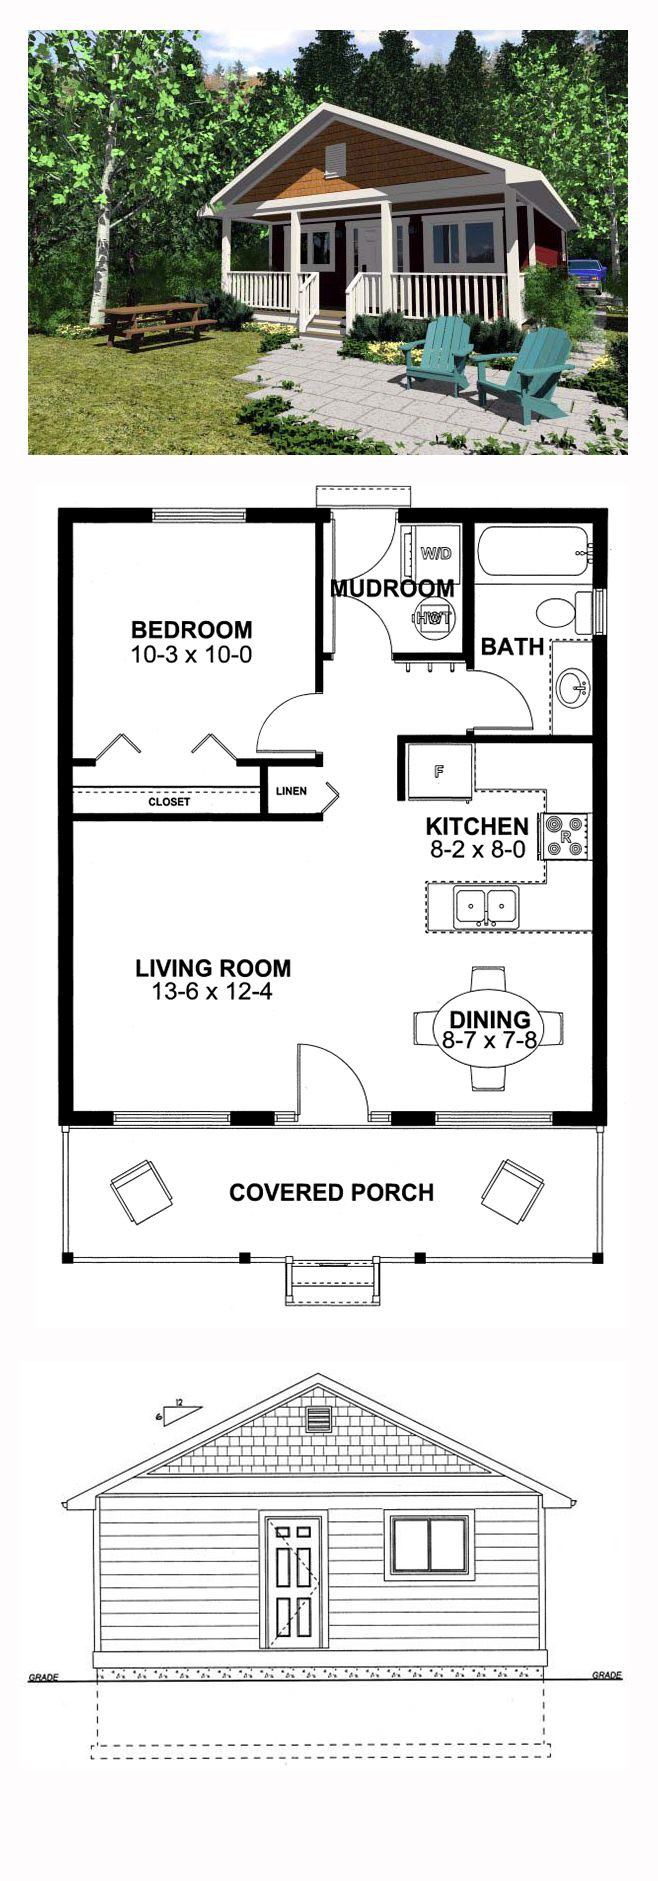 narrow lot house plan 99971 total living area 598 sq ft 1